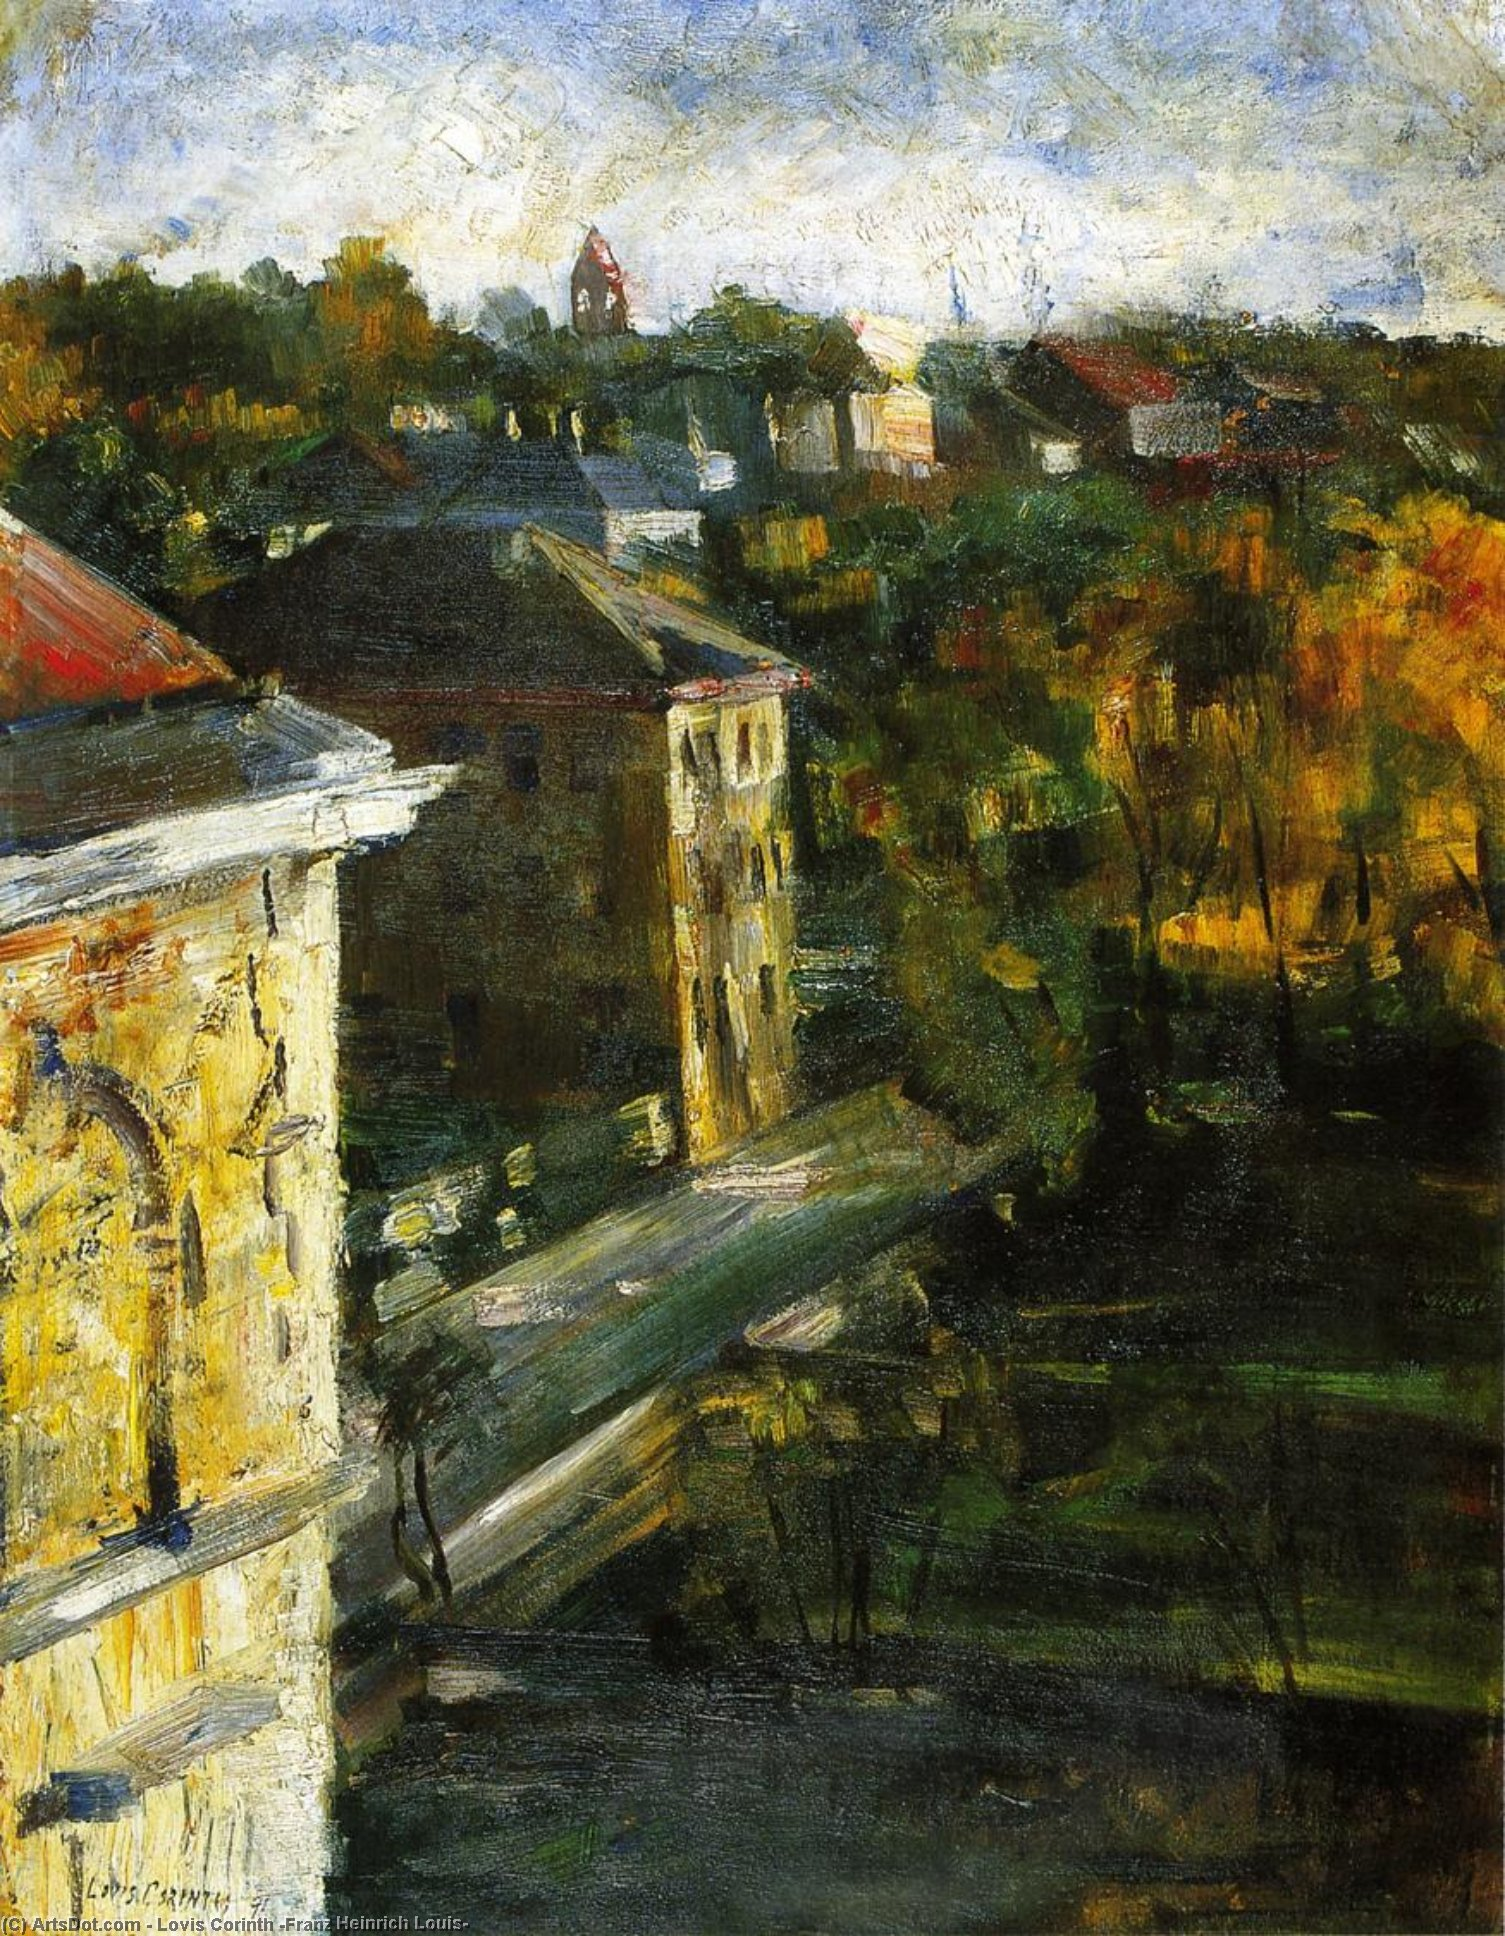 View from the Studio Window, Oil On Panel by Lovis Corinth (Franz Heinrich Louis) (1858-1925, Netherlands)